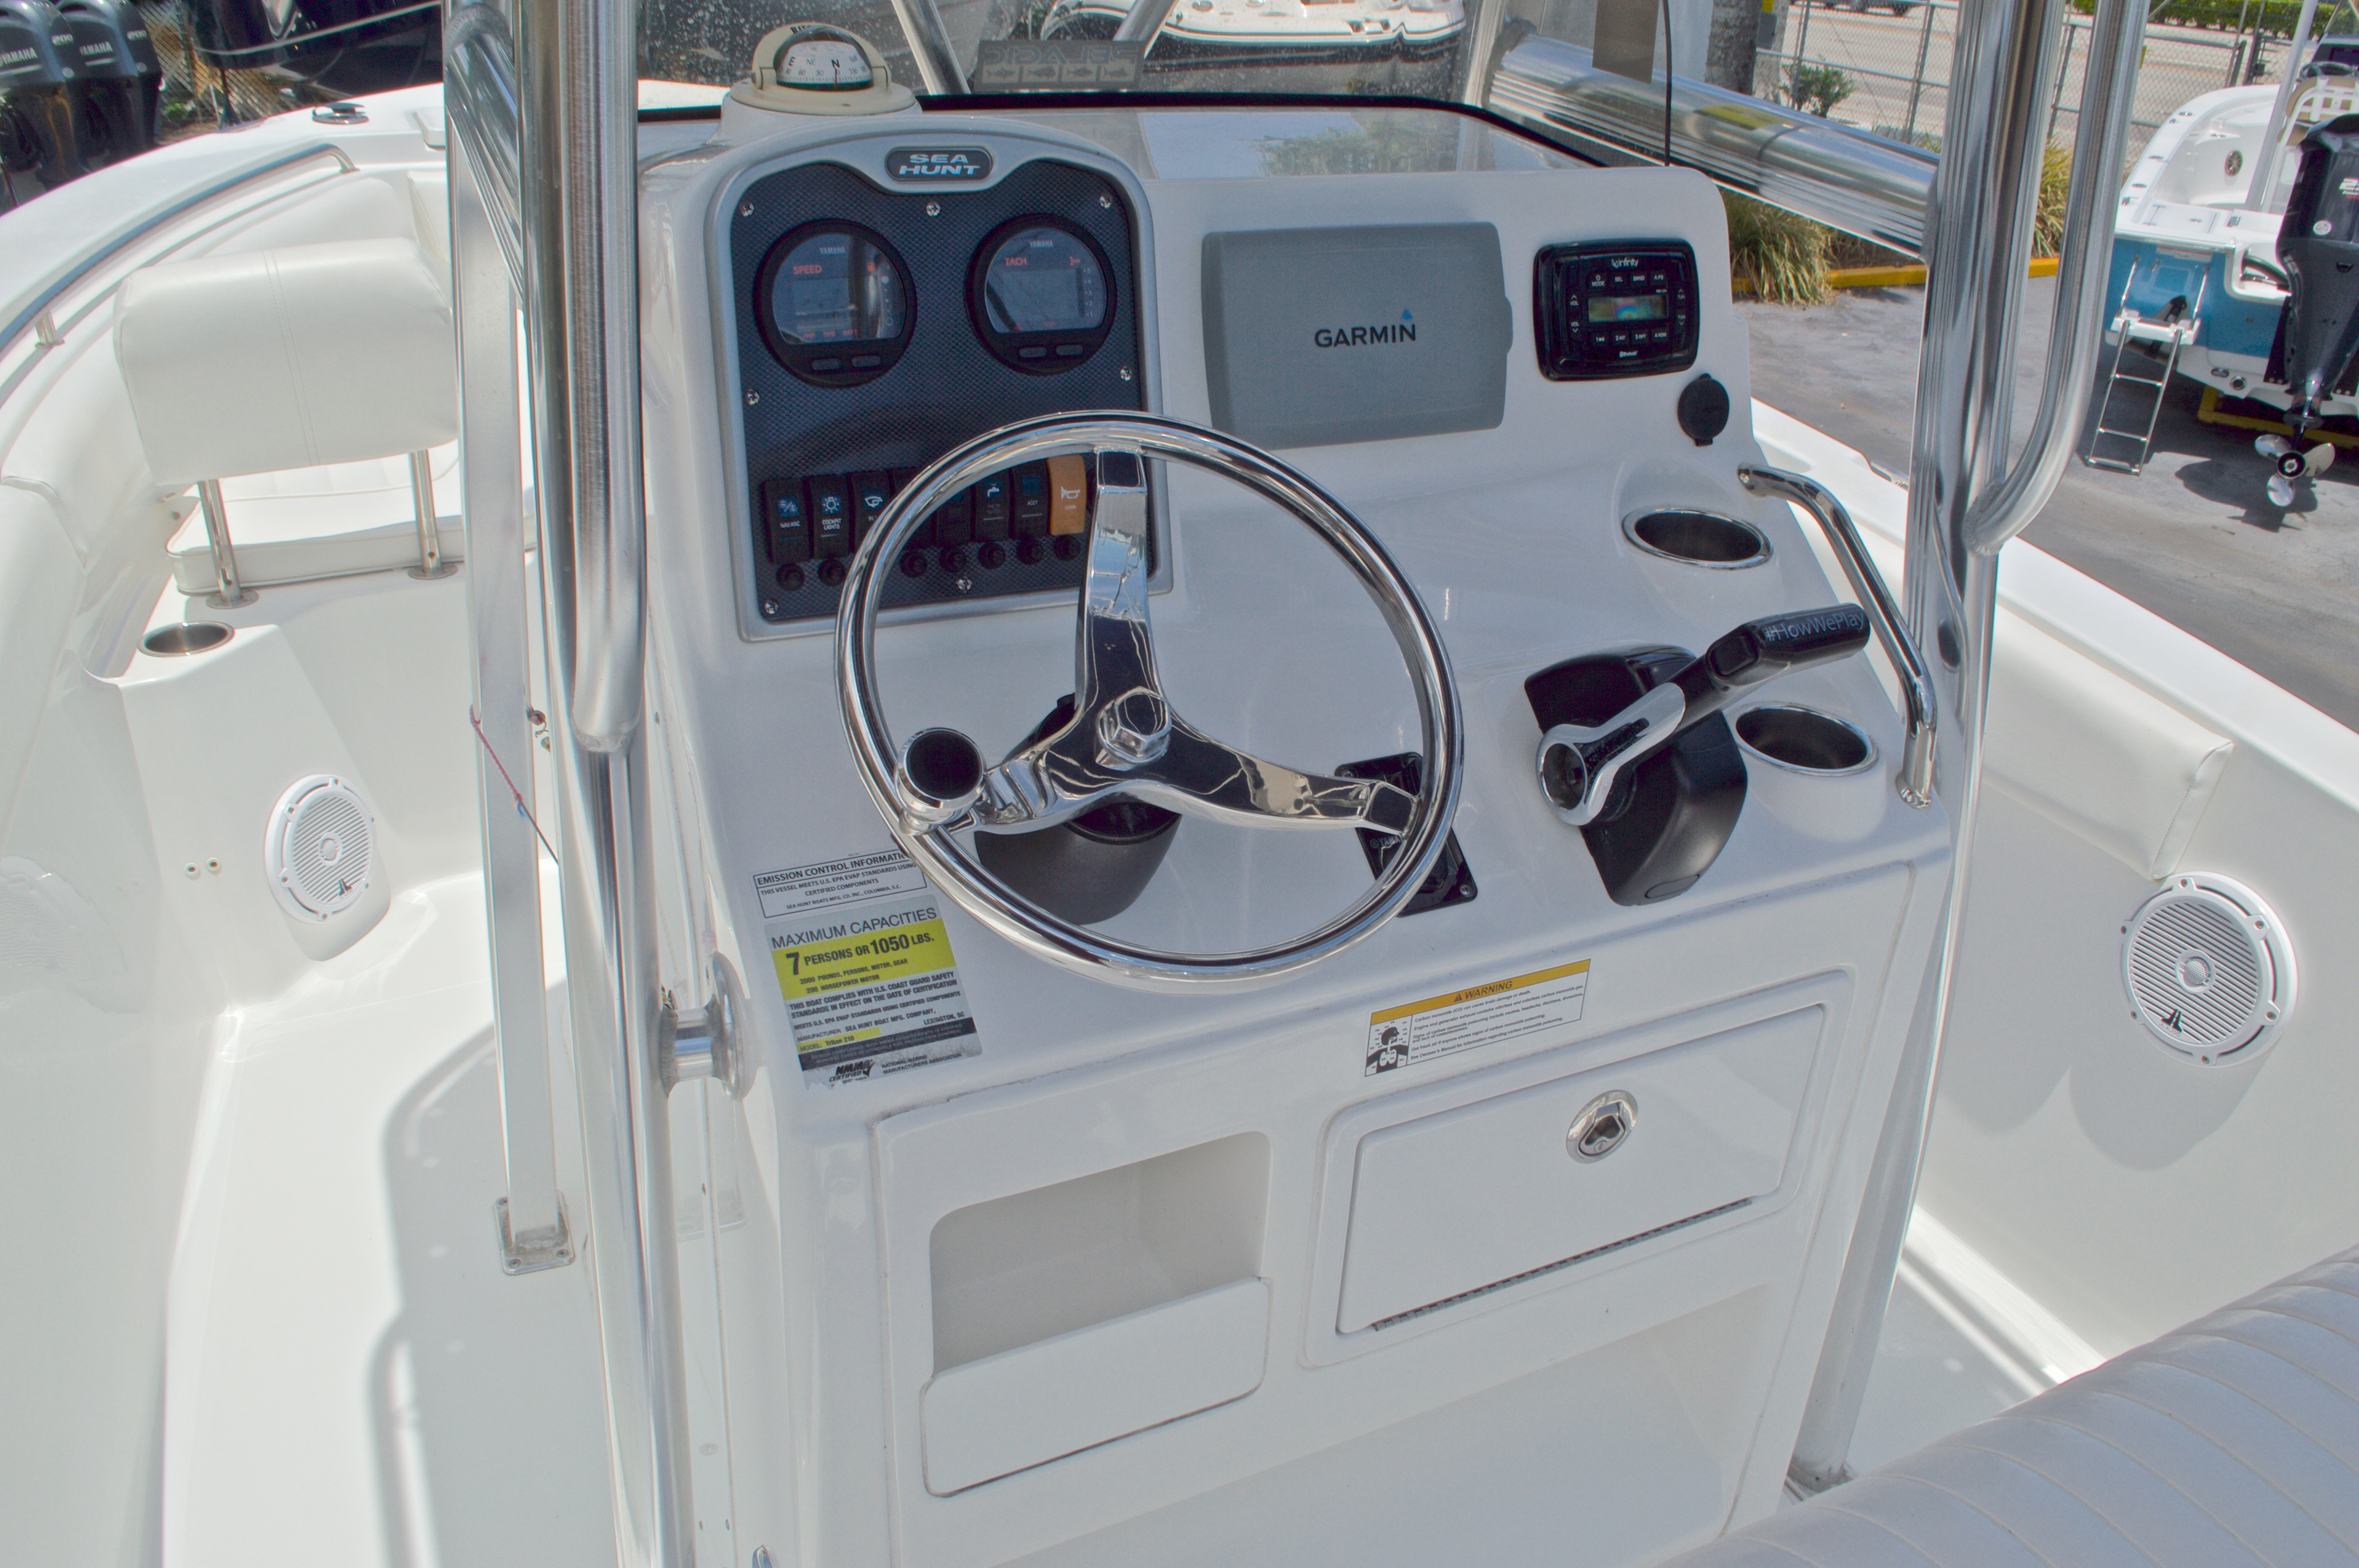 Thumbnail 27 for Used 2013 Sea Hunt 210 Triton boat for sale in West Palm Beach, FL